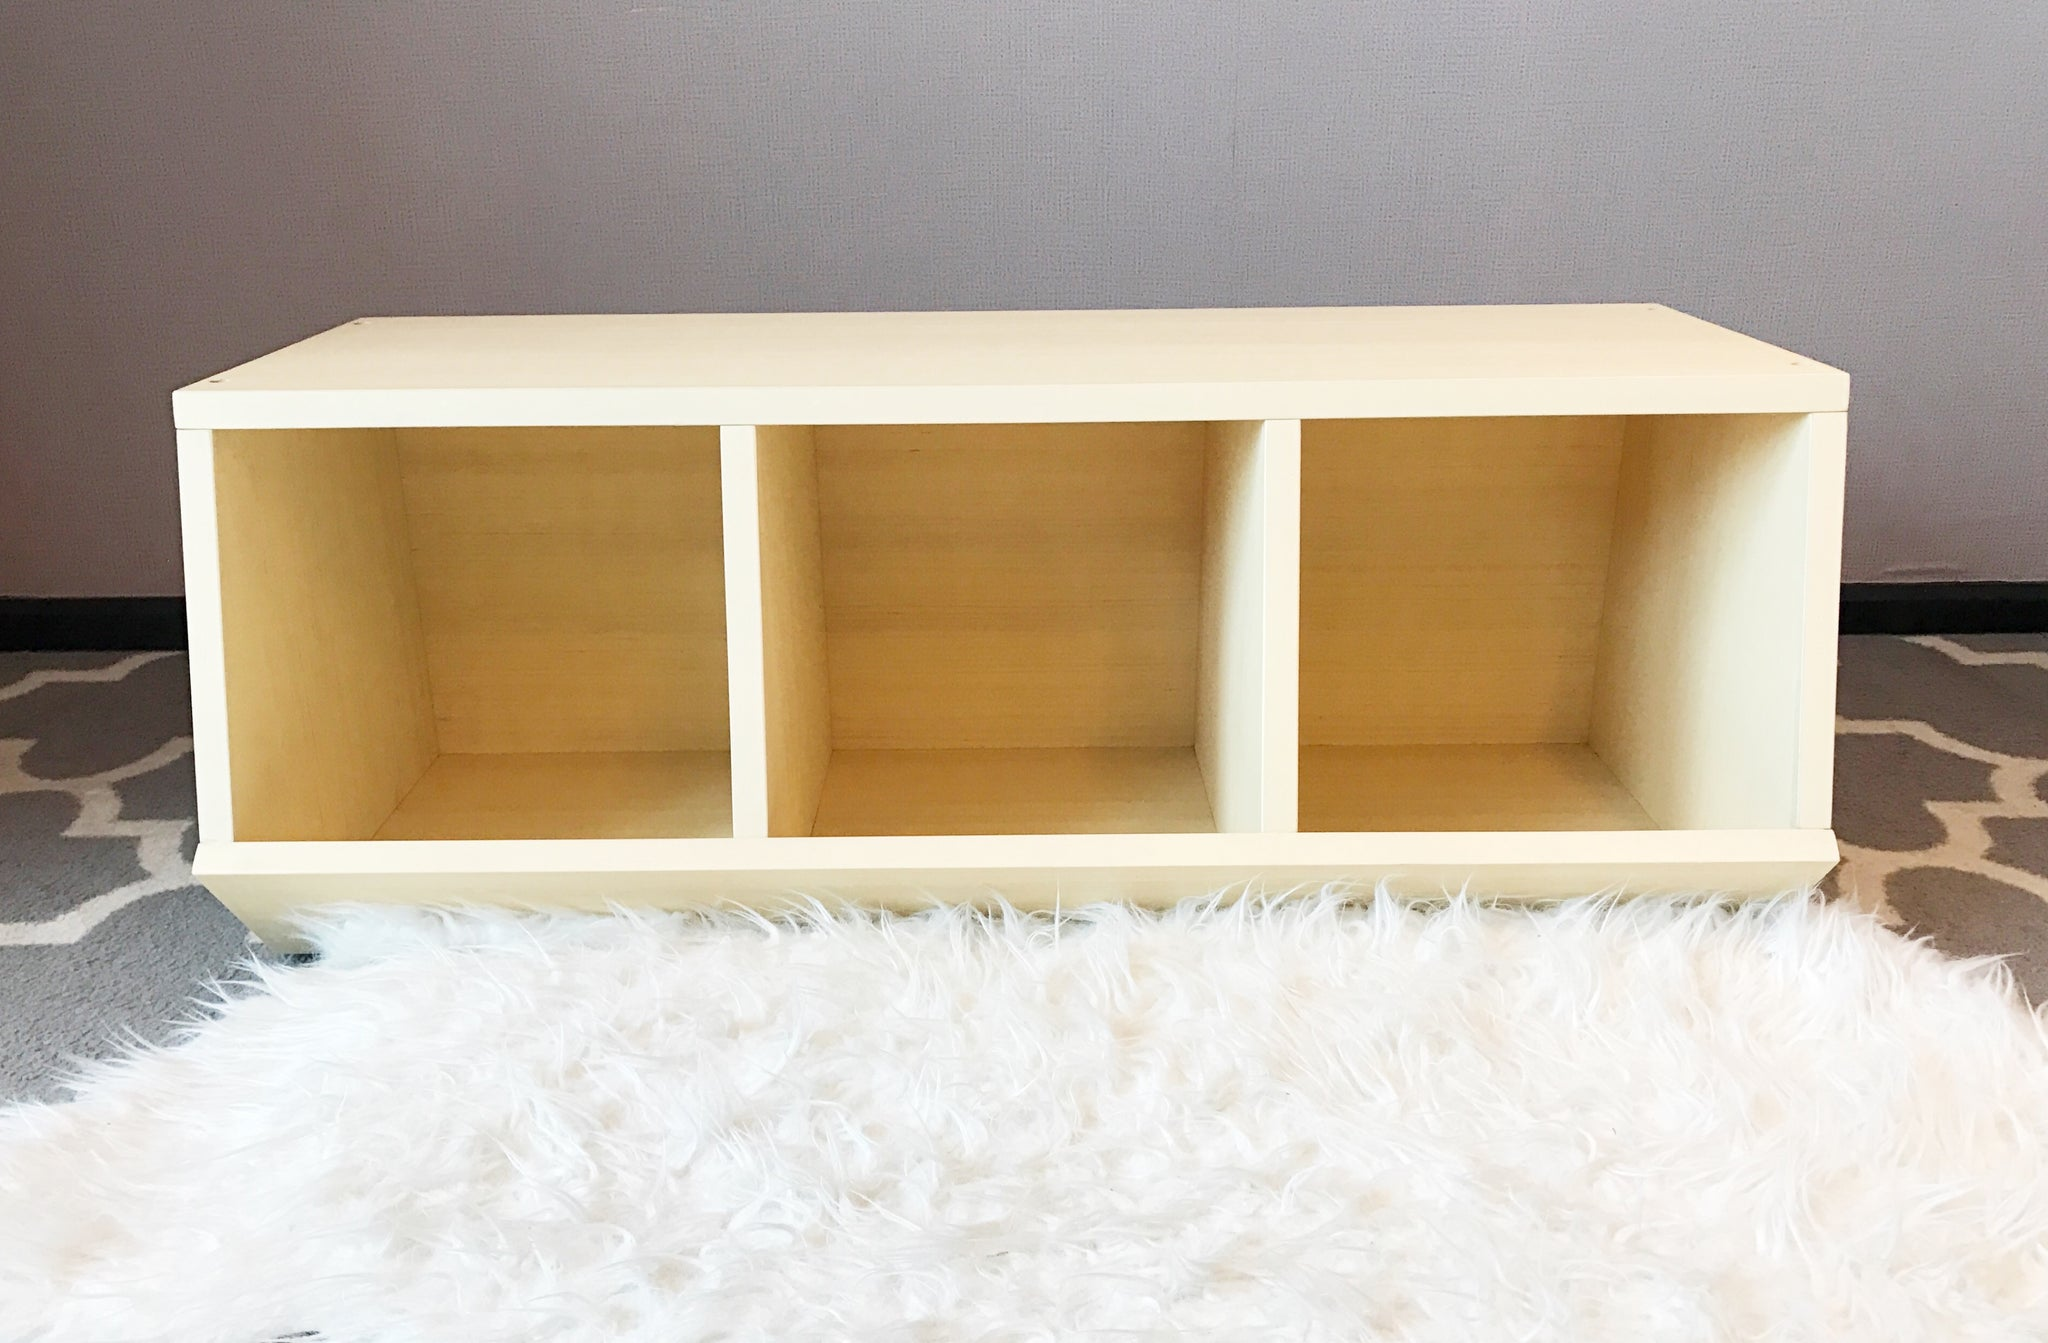 Linear Stackable Geometric Toy Storage Shelf